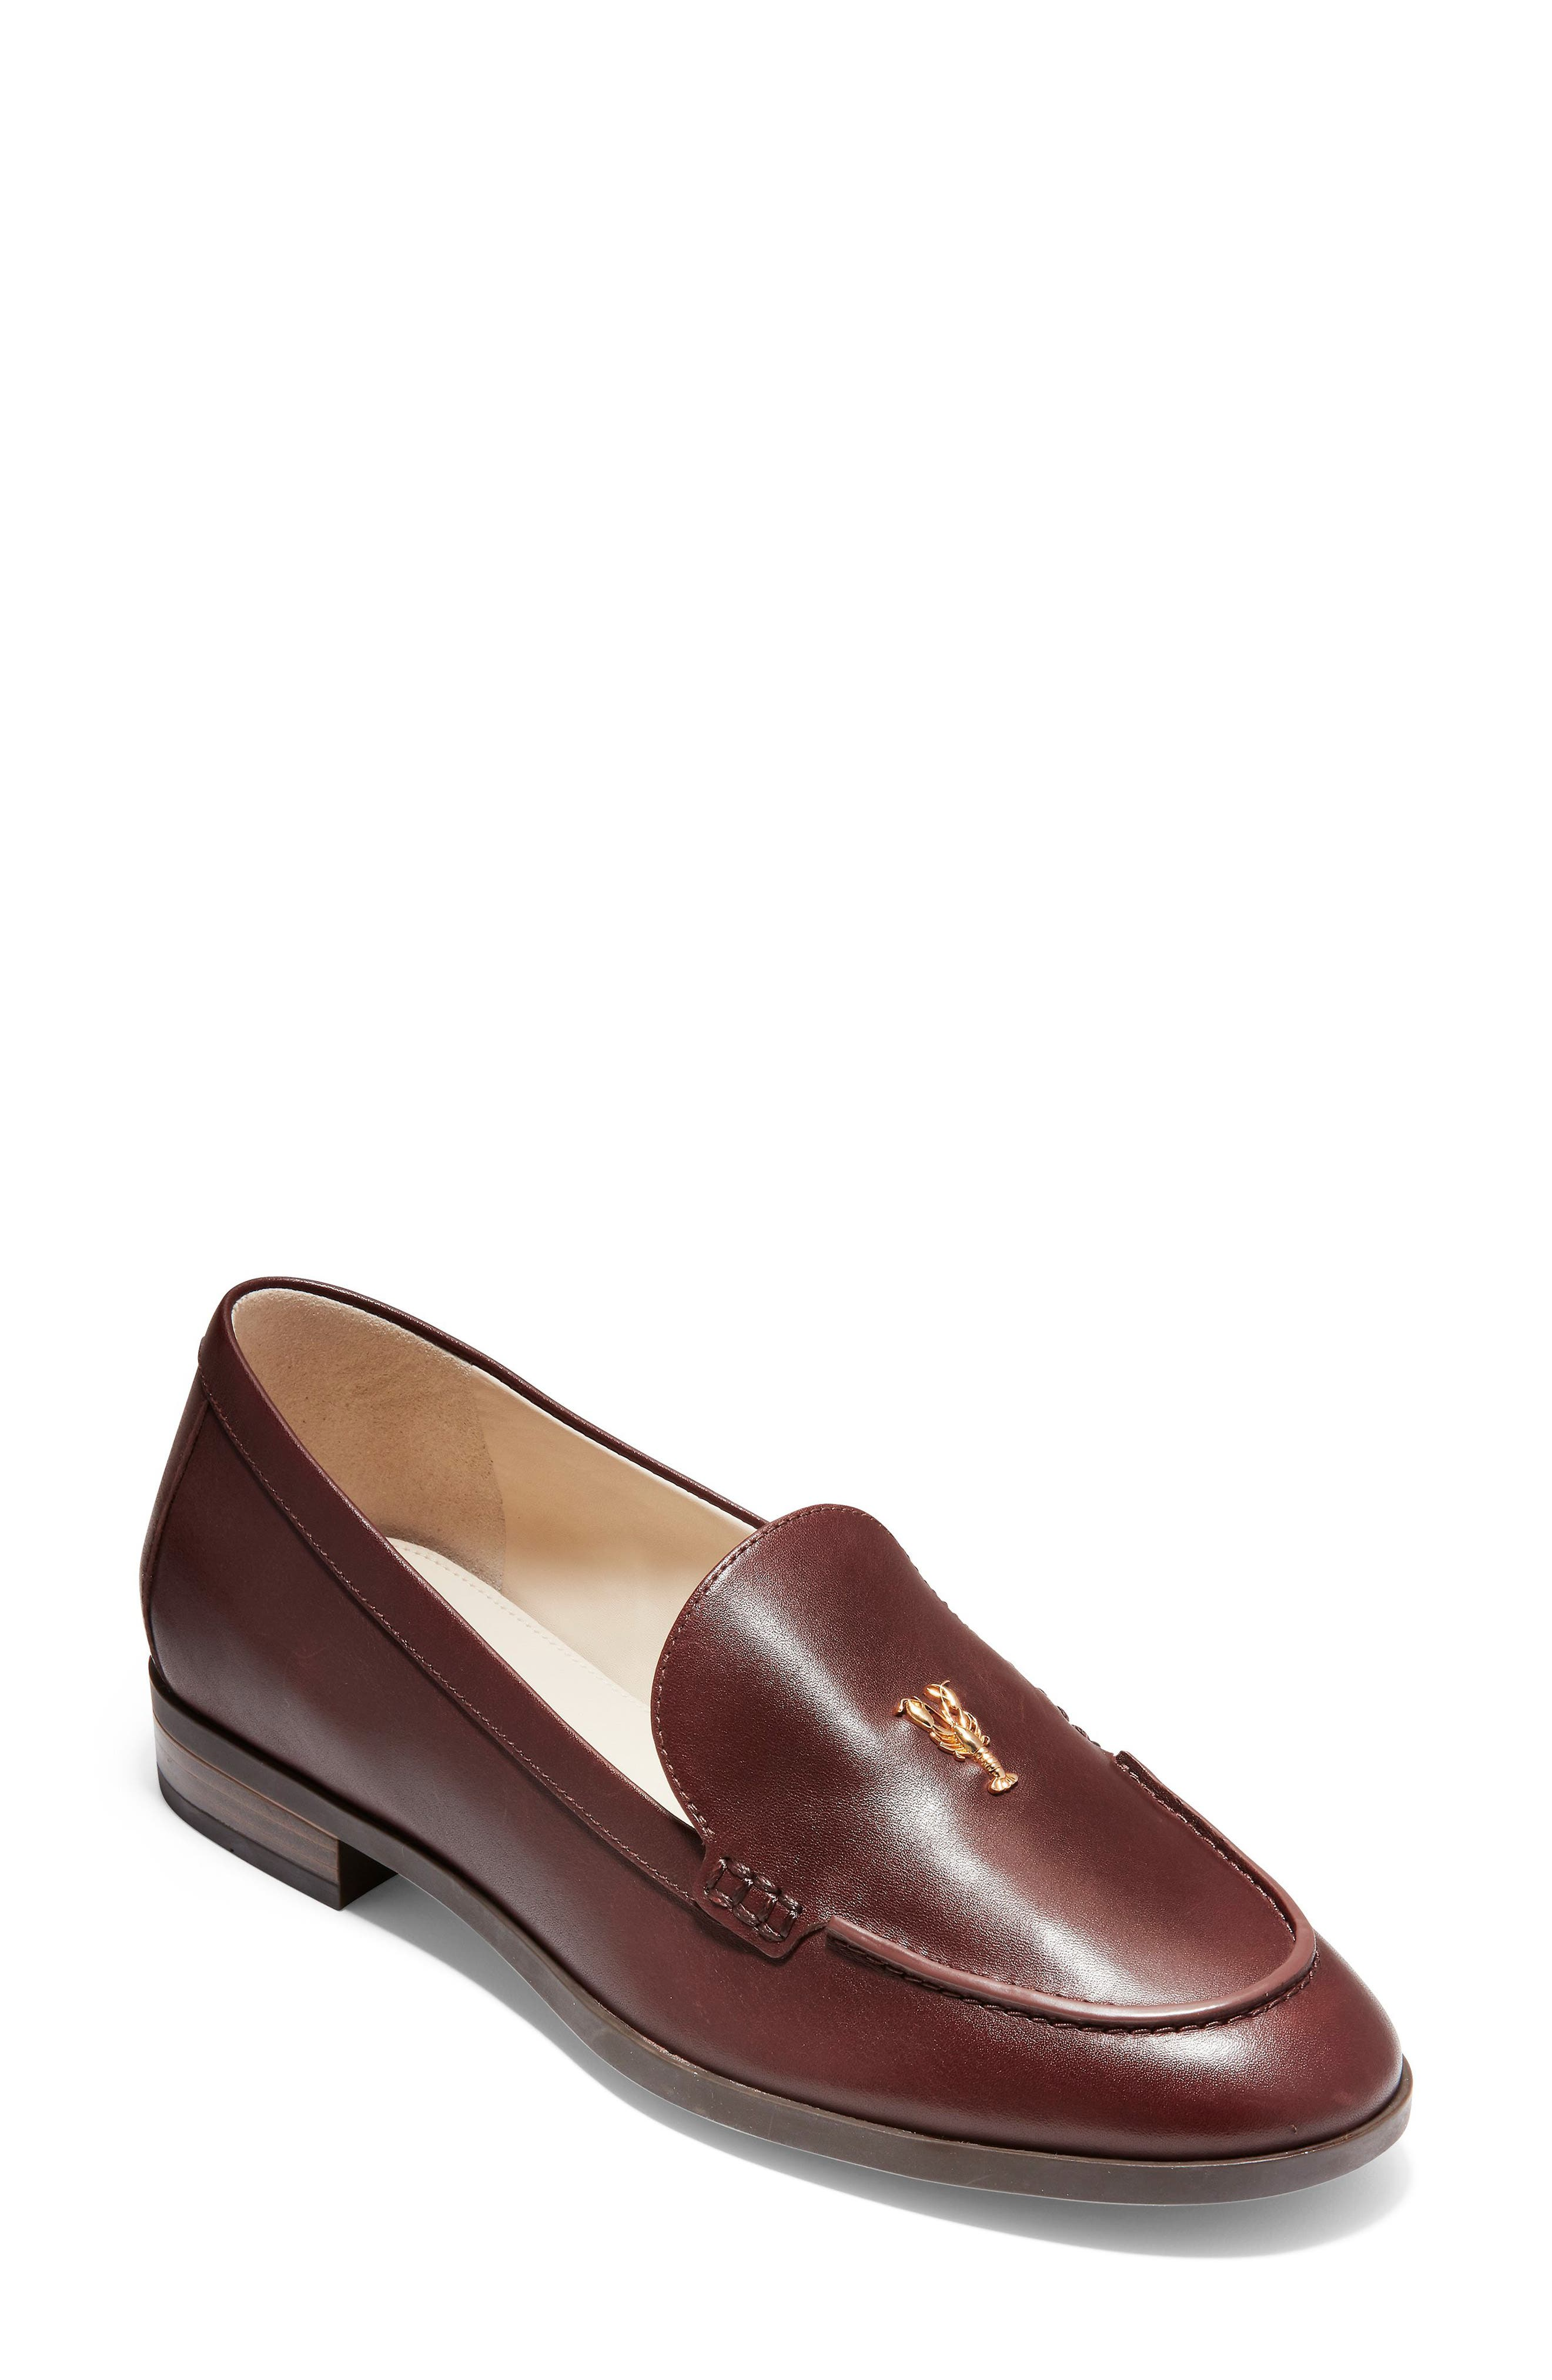 Pinch Lobster Loafer,                             Main thumbnail 5, color,